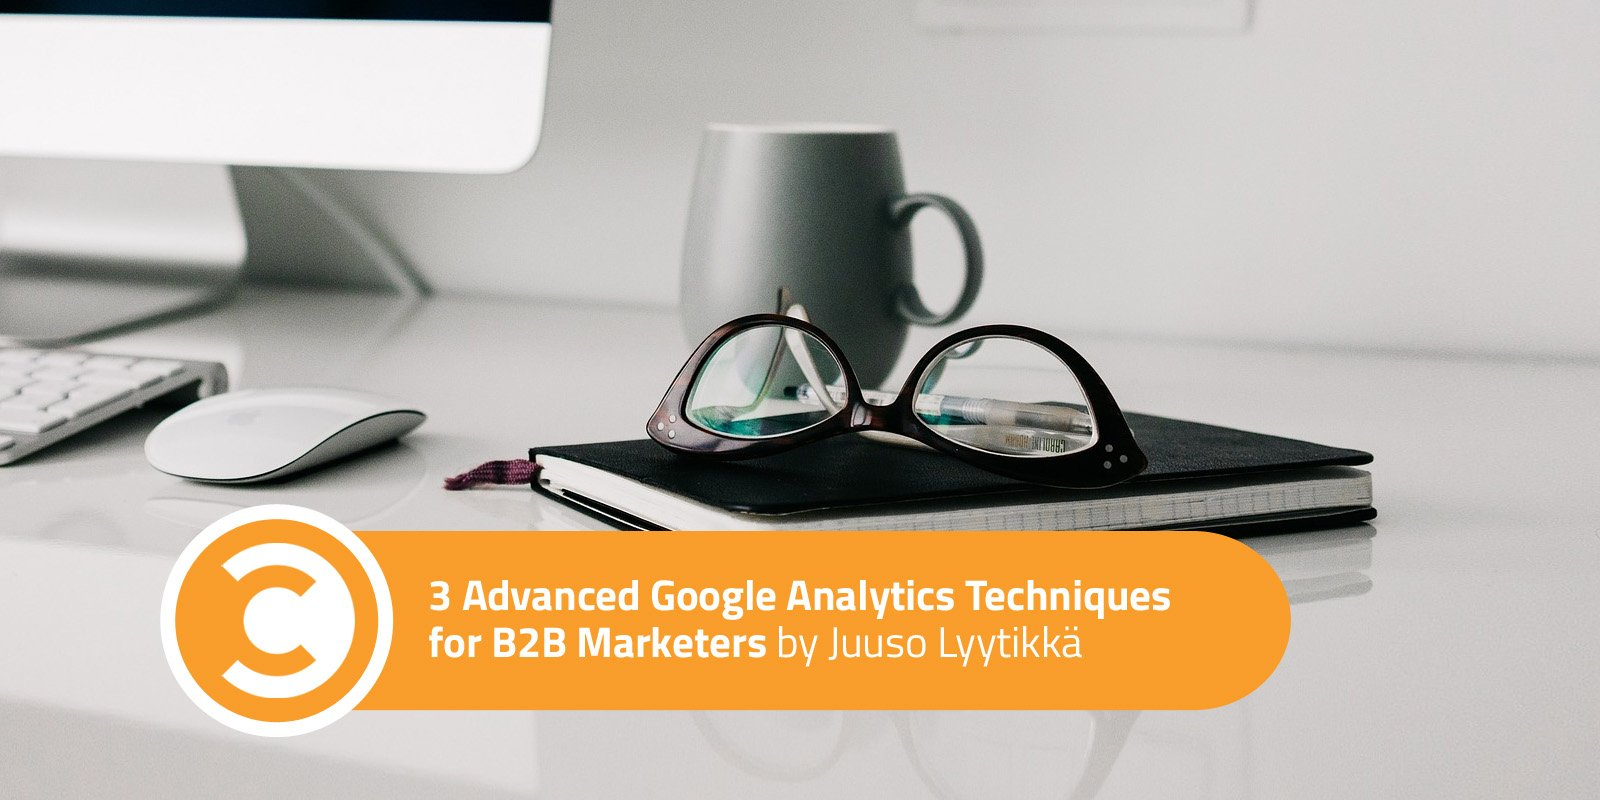 3 Advanced Google Analytics Techniques for B2B Marketers